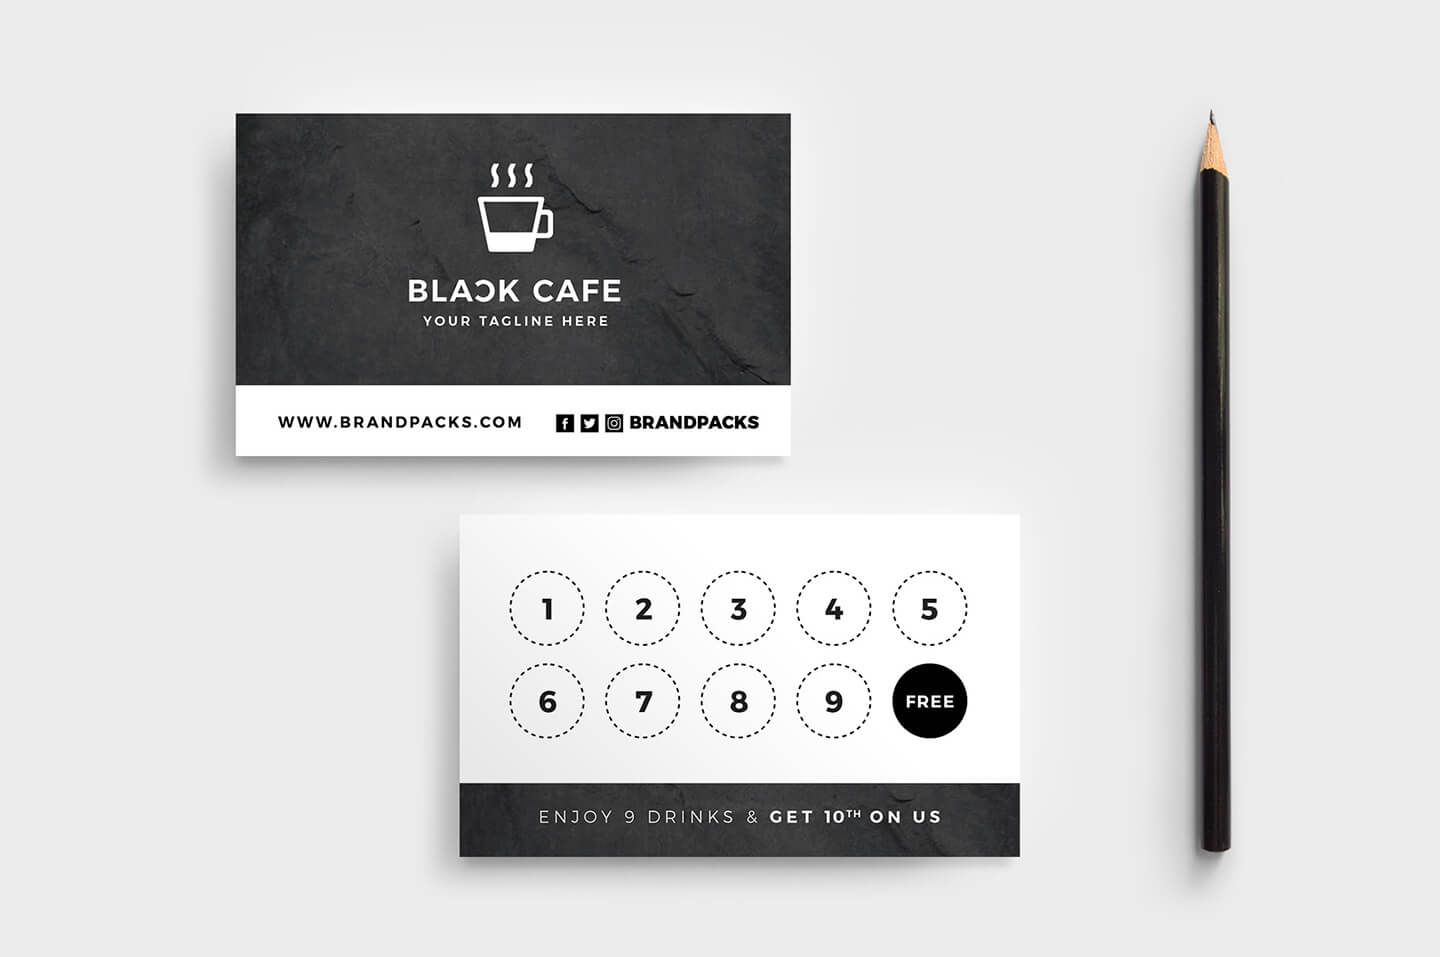 Free Loyalty Card Templates - Psd, Ai & Vector - Brandpacks intended for Membership Card Template Free